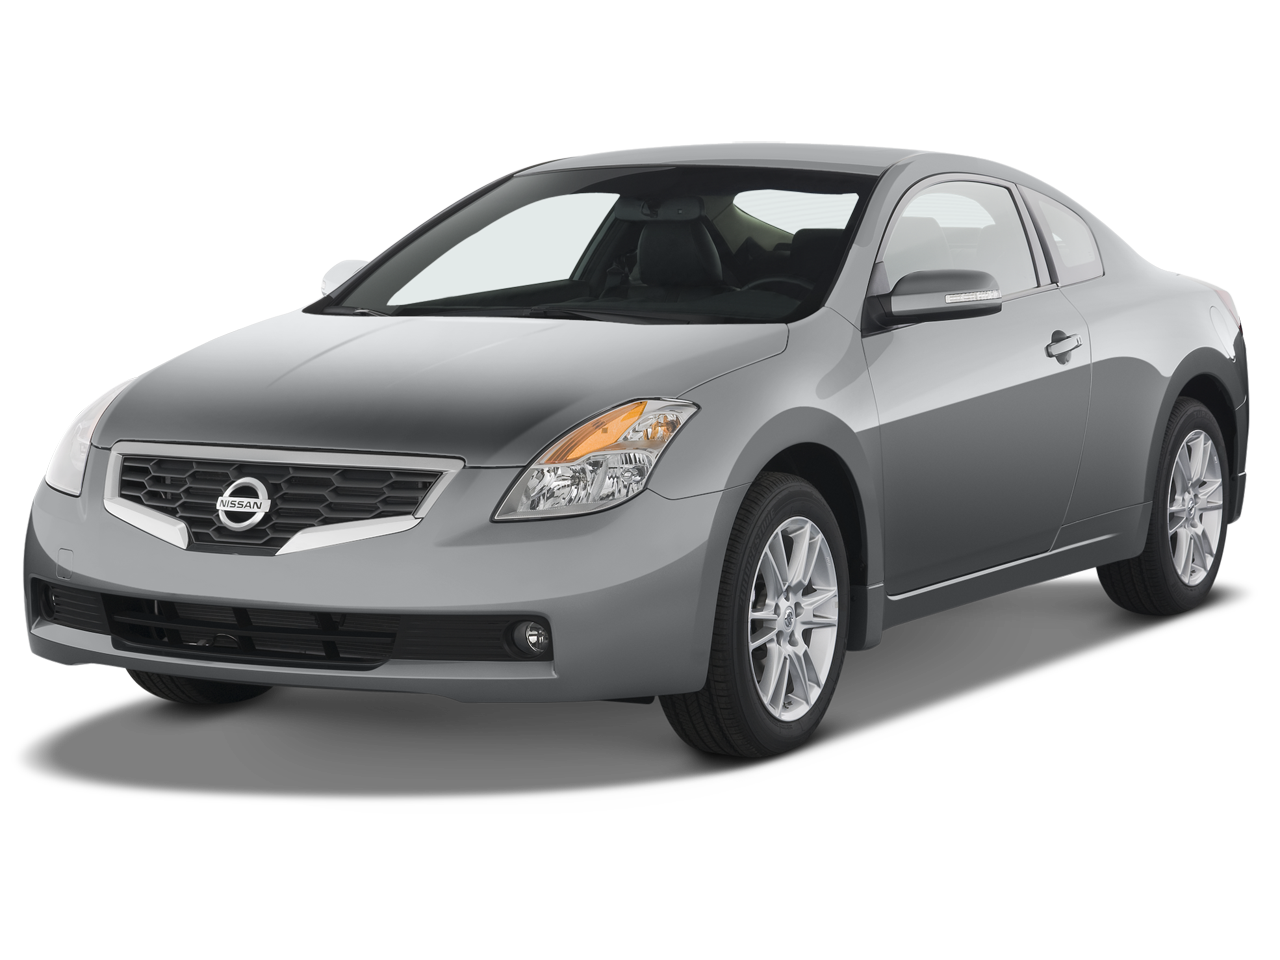 67 The Nissan Altima Coupe 2008 Reviews by Nissan Altima Coupe 2008